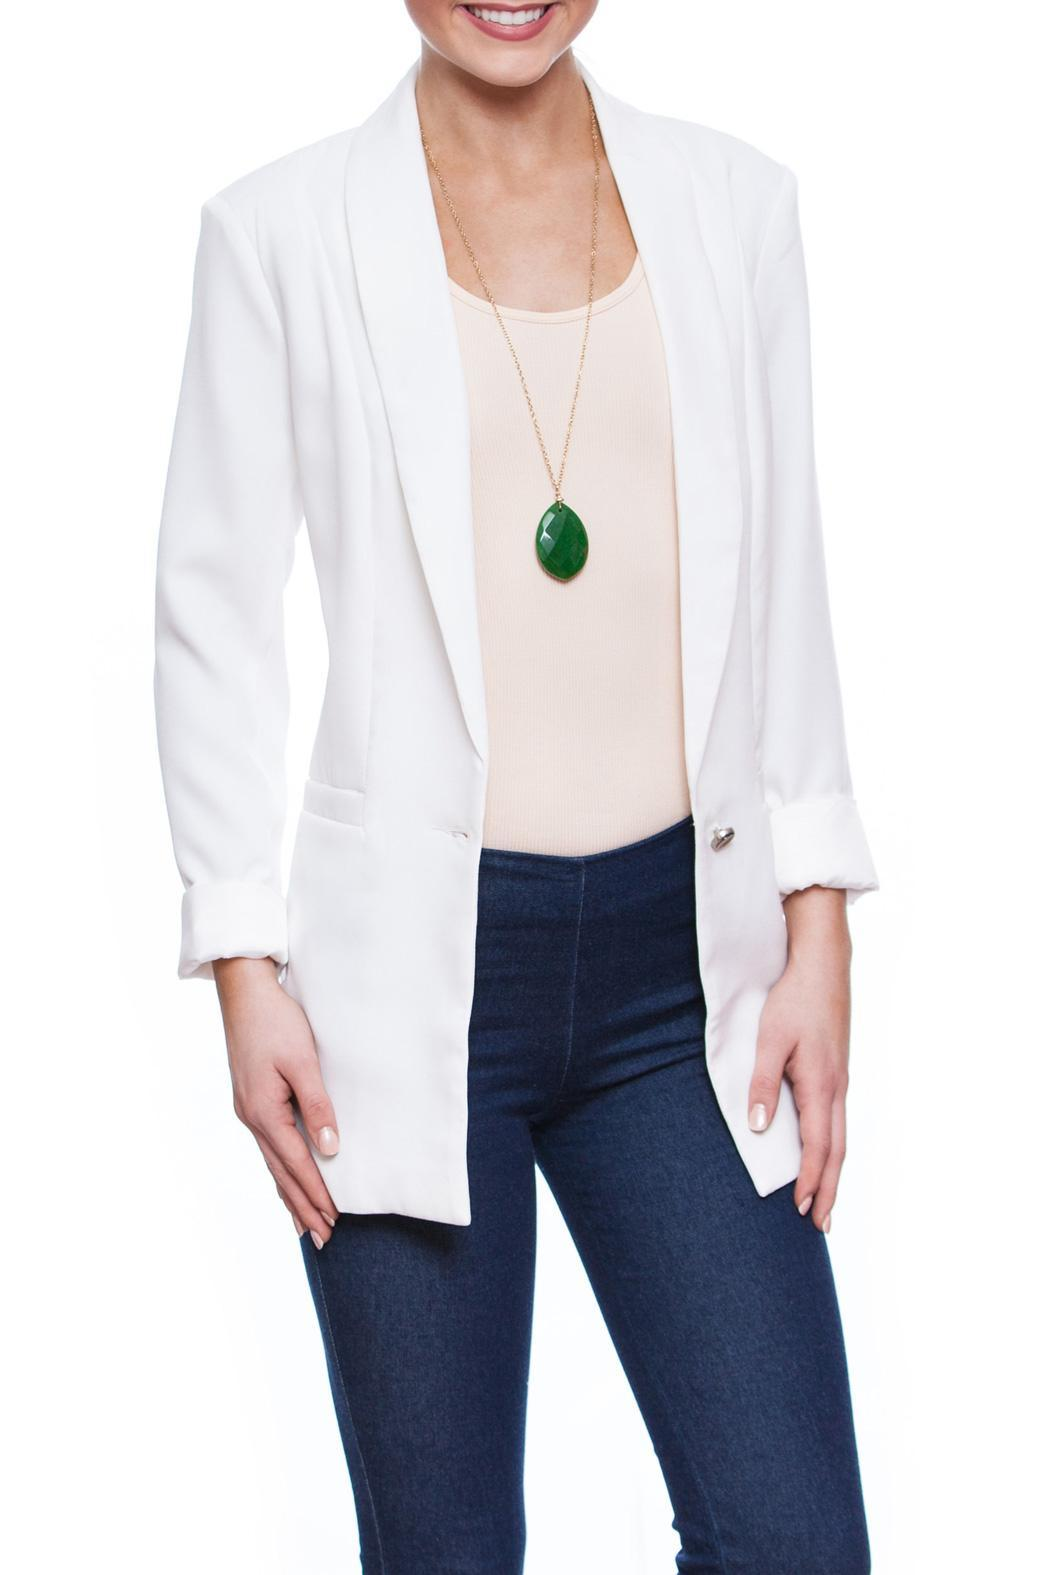 Evenuel White Boyfriend Blazer from South Carolina by Current ...